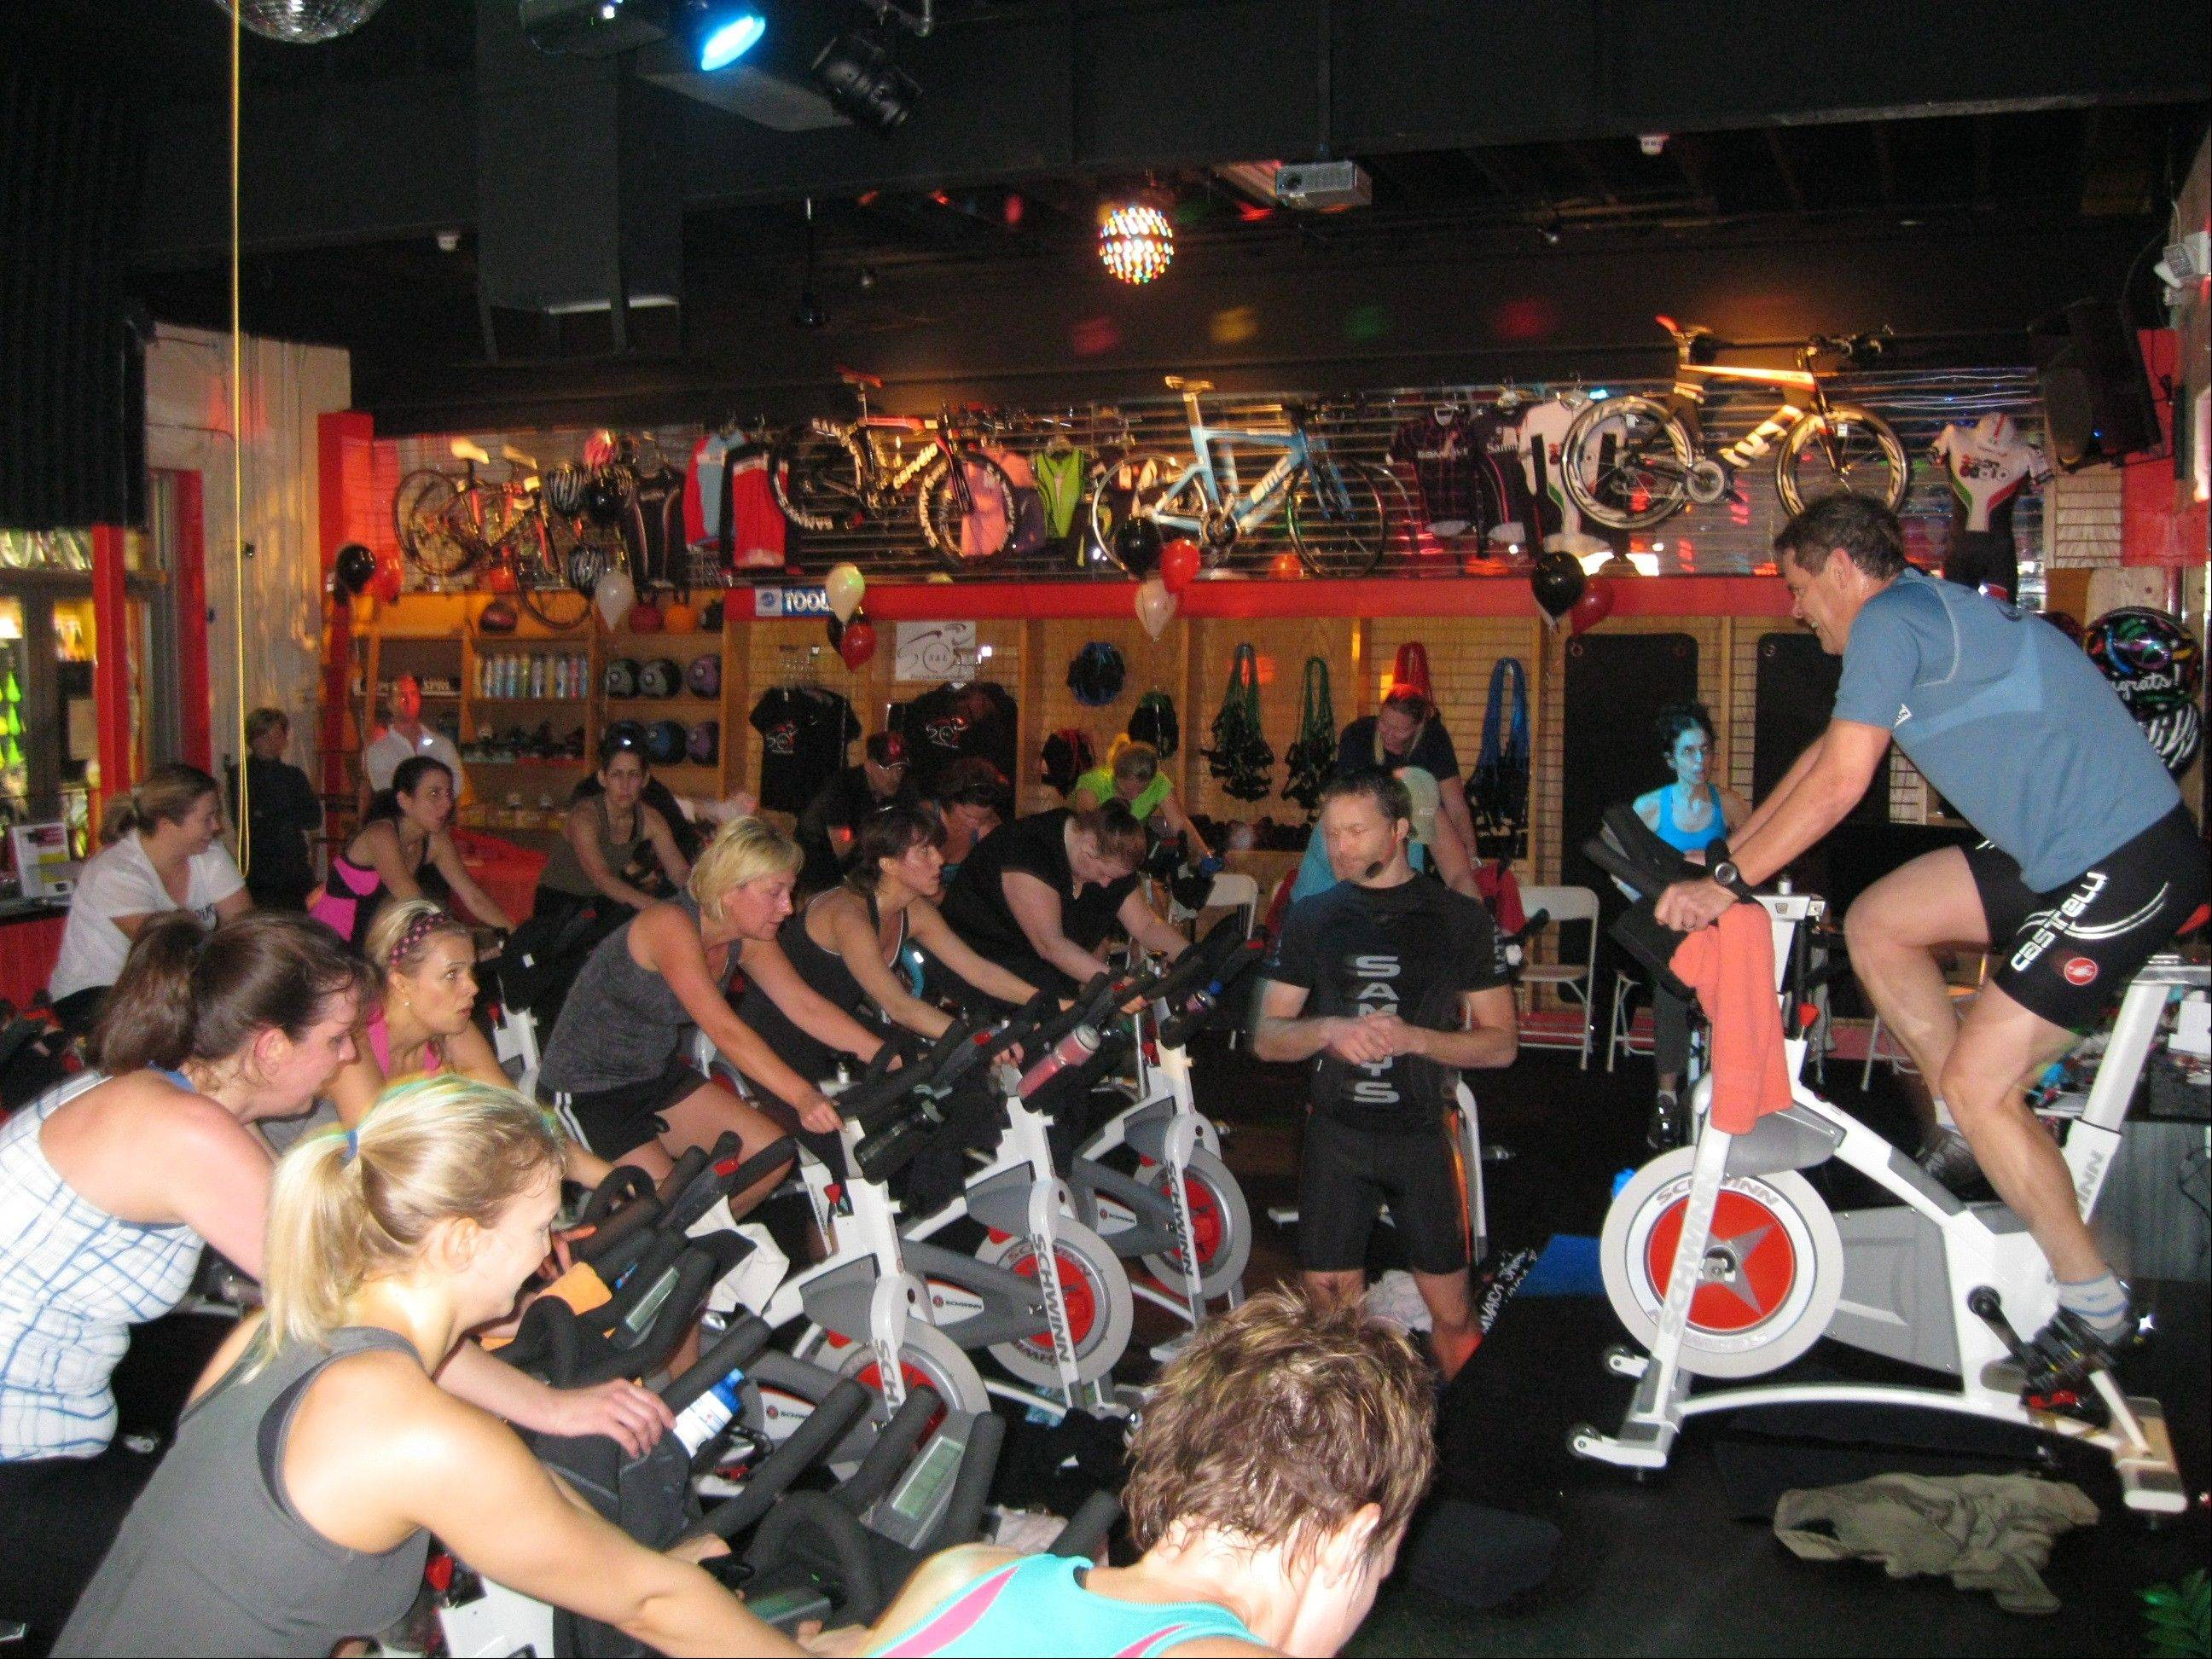 Leslie Grosshauser and Sammy recently opened S&L Tri-CycleFitStudio in St. Charles.